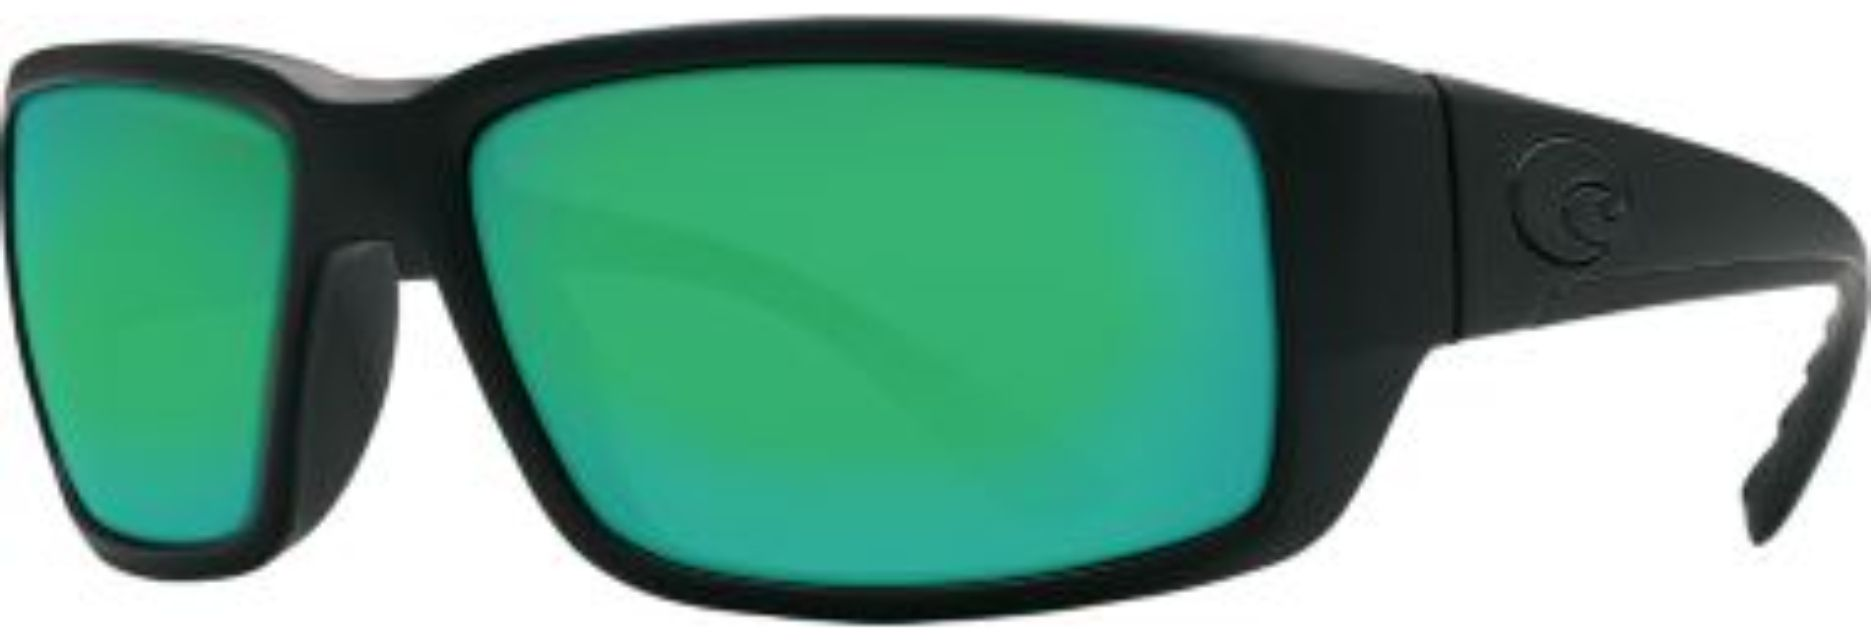 9ffe2d79f85 The 8 Best Polarized Sunglasses of 2019